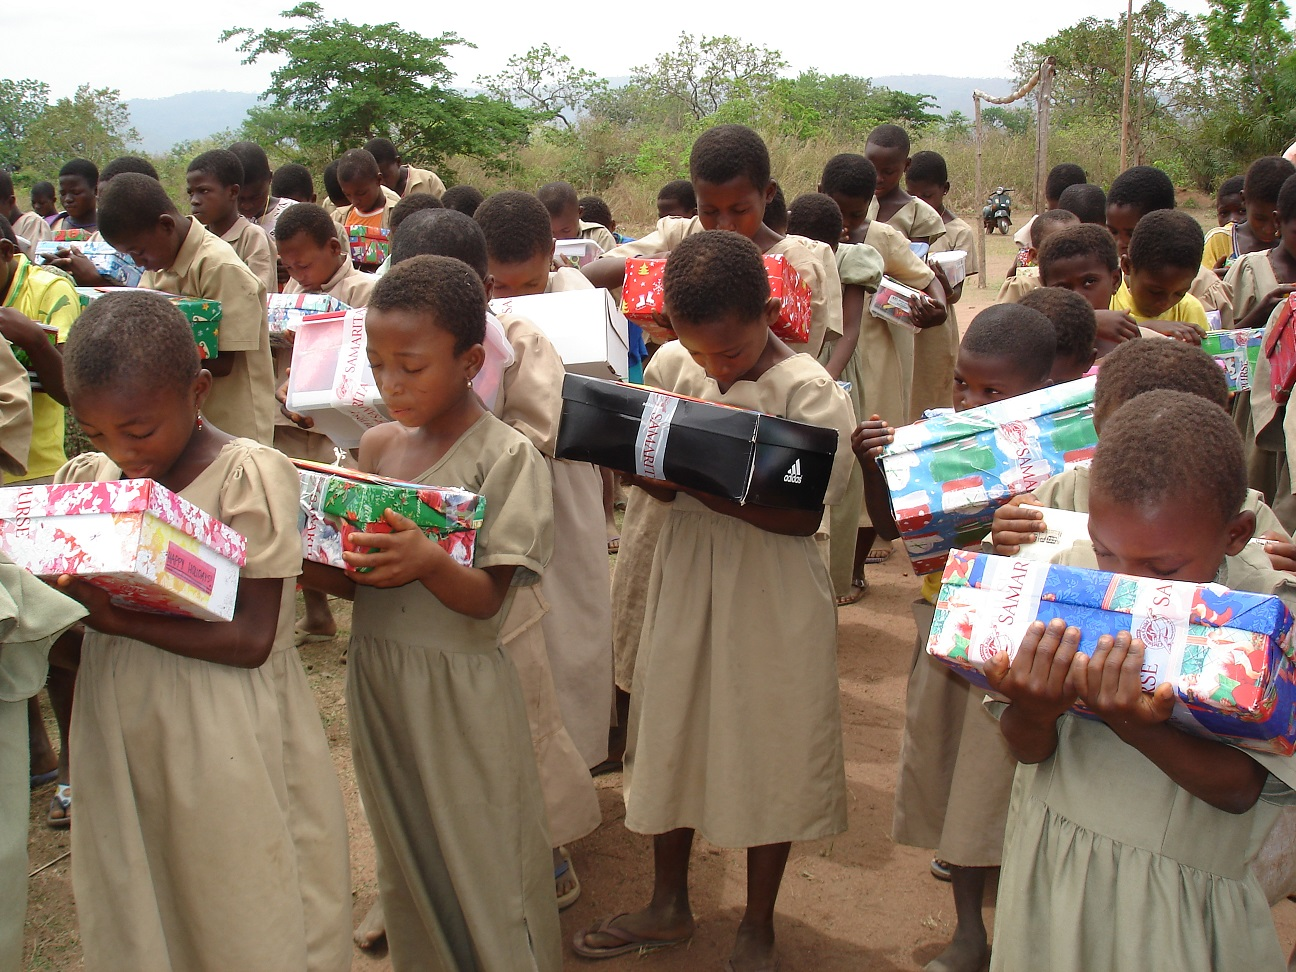 Children in Togo receive their shoebox gifts